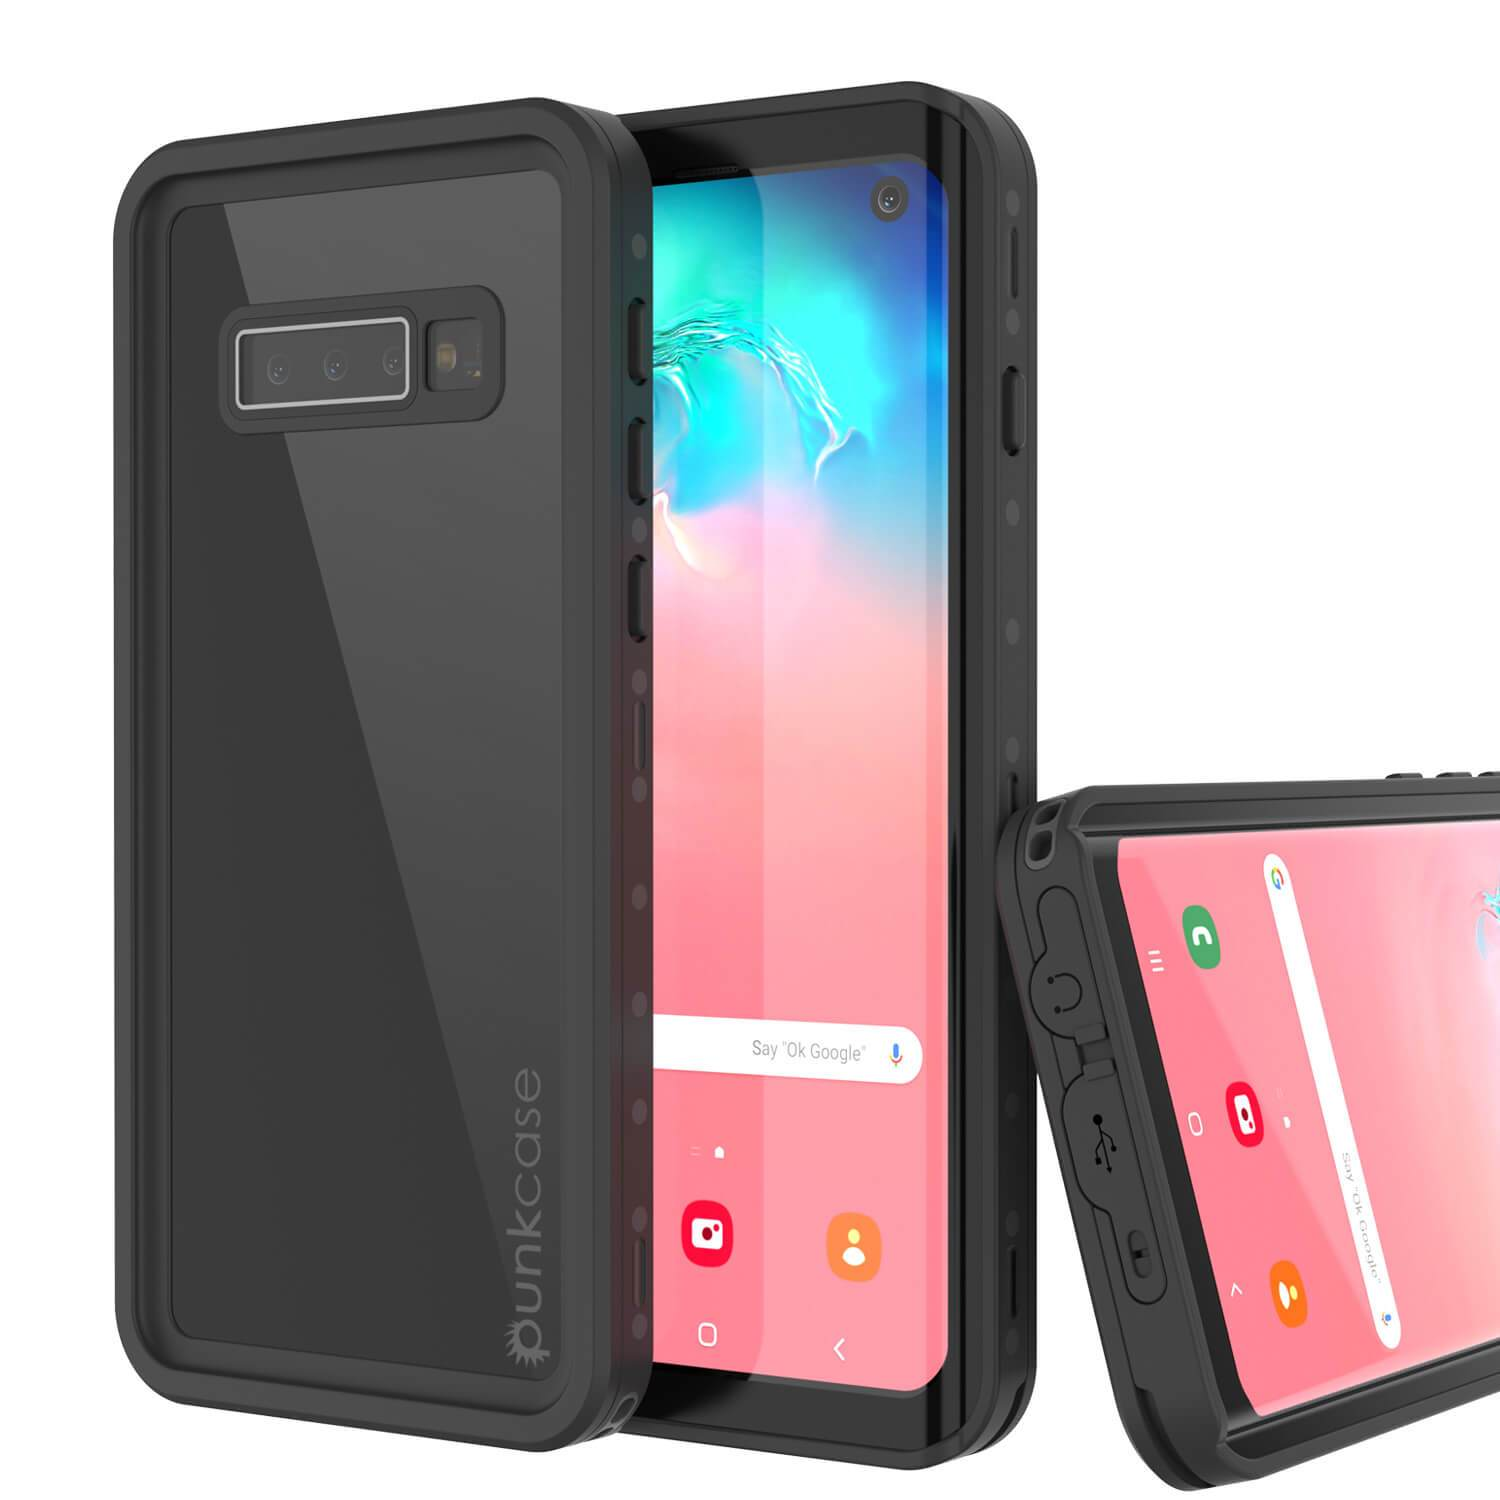 Galaxy A10e Waterproof Case PunkCase StudStar Black Thin 6.6ft Underwater IP68 Shock/Snow Proof